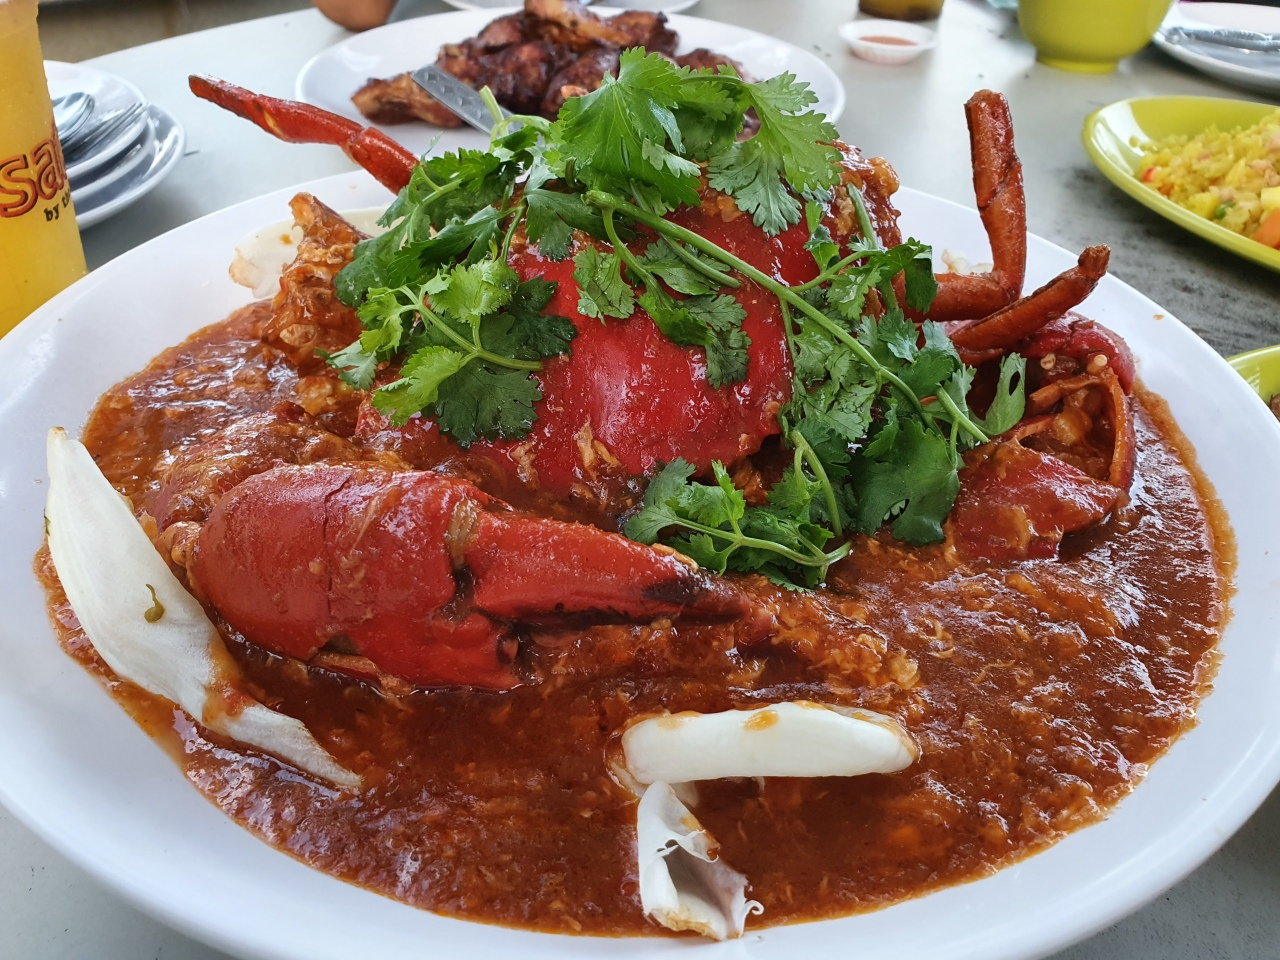 Evening 174: Chilli Crab